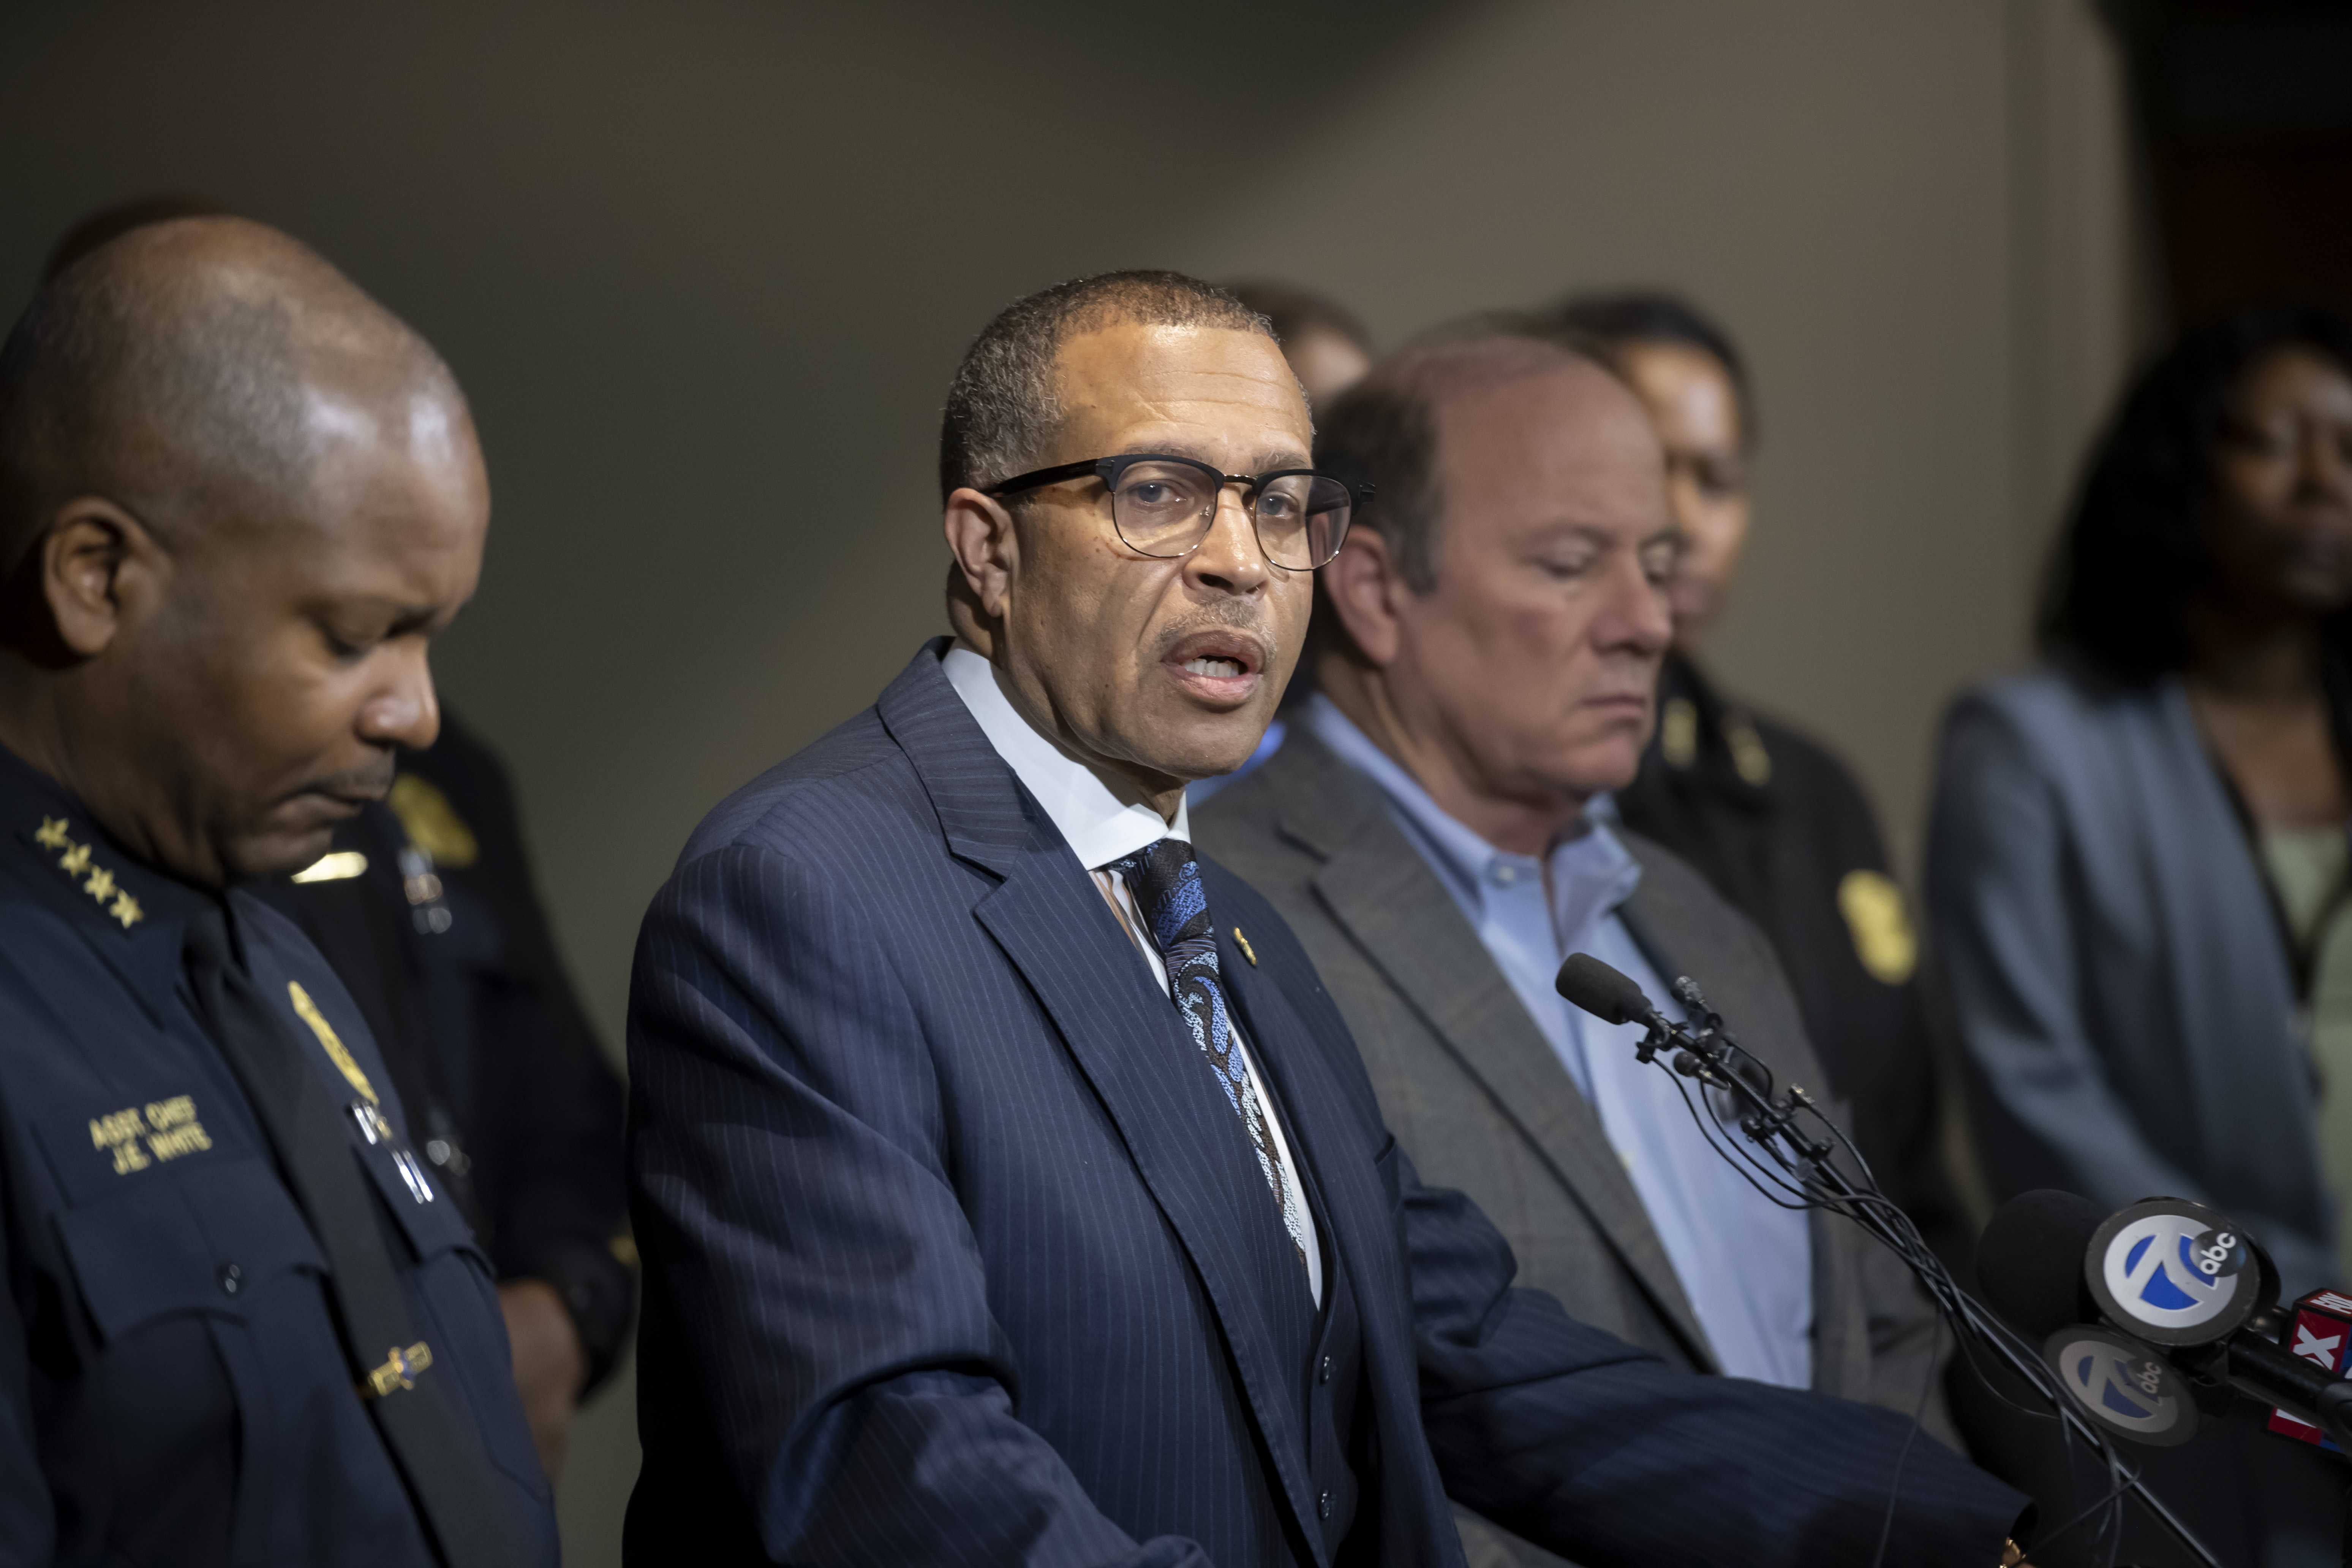 Detroit Police Chief James Craig, center, speaks to the media at Detroit Public Safety Headquarters in Detroit on November 21, 2019.